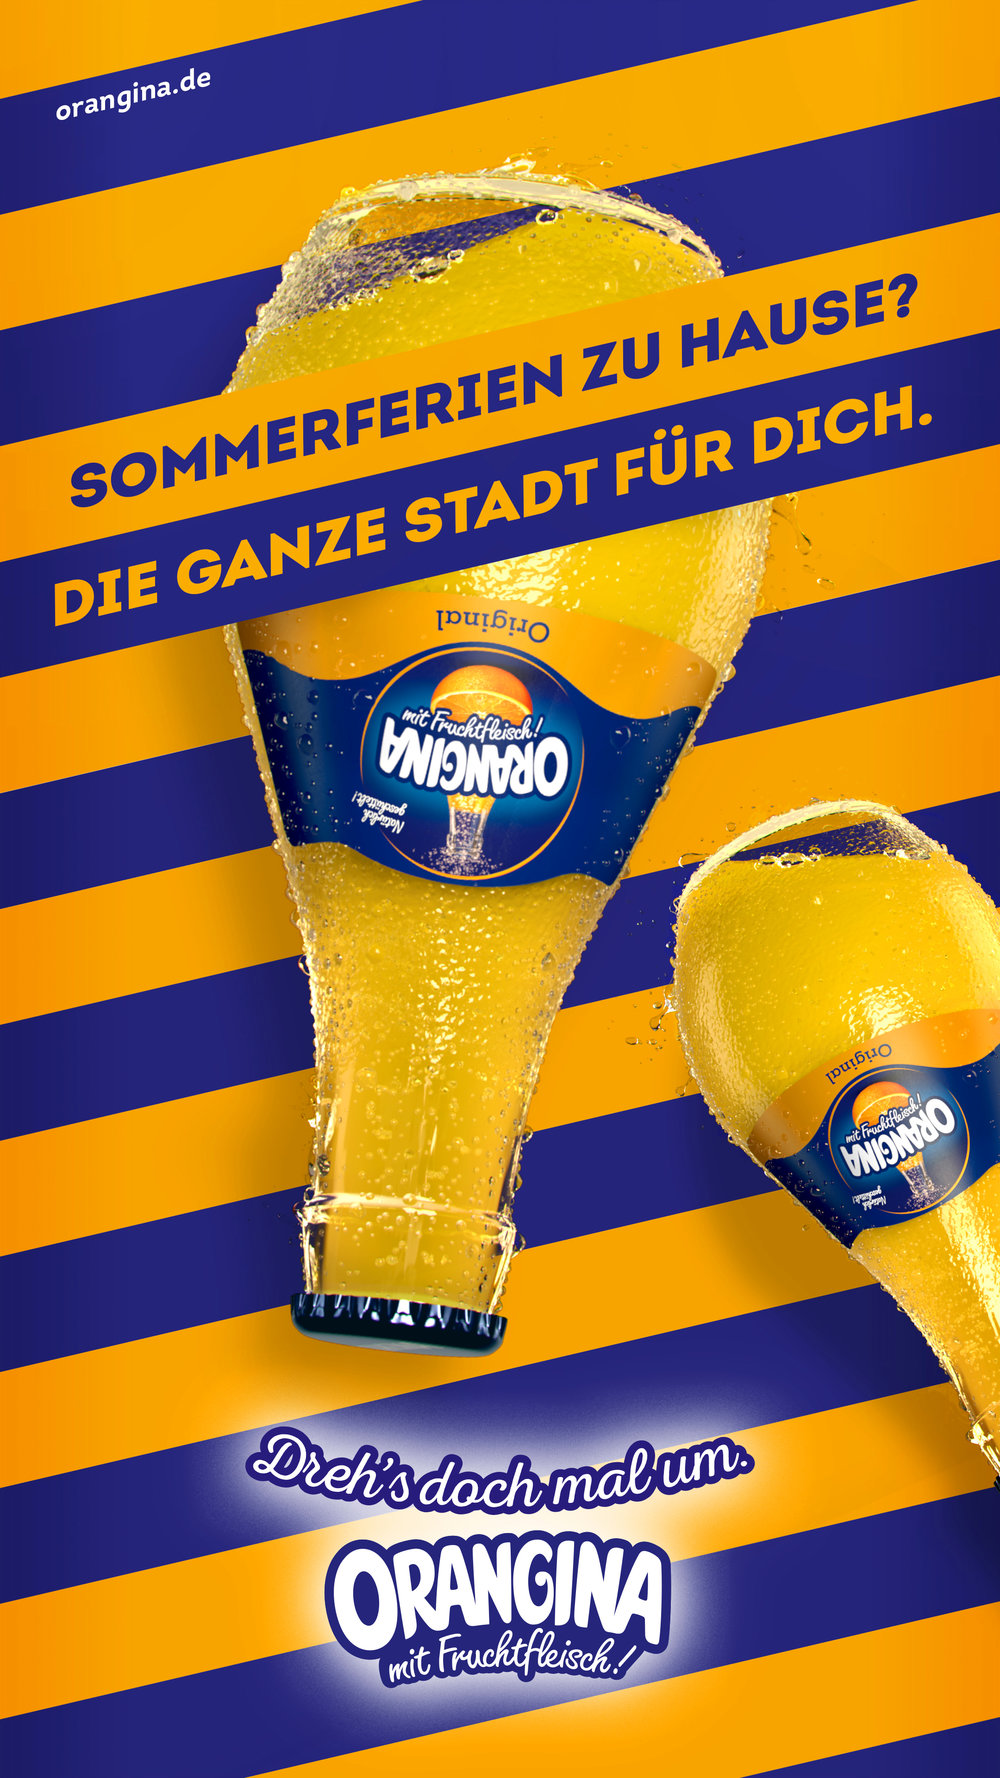 orangina_dclp_ZUHAUSE_up.jpg